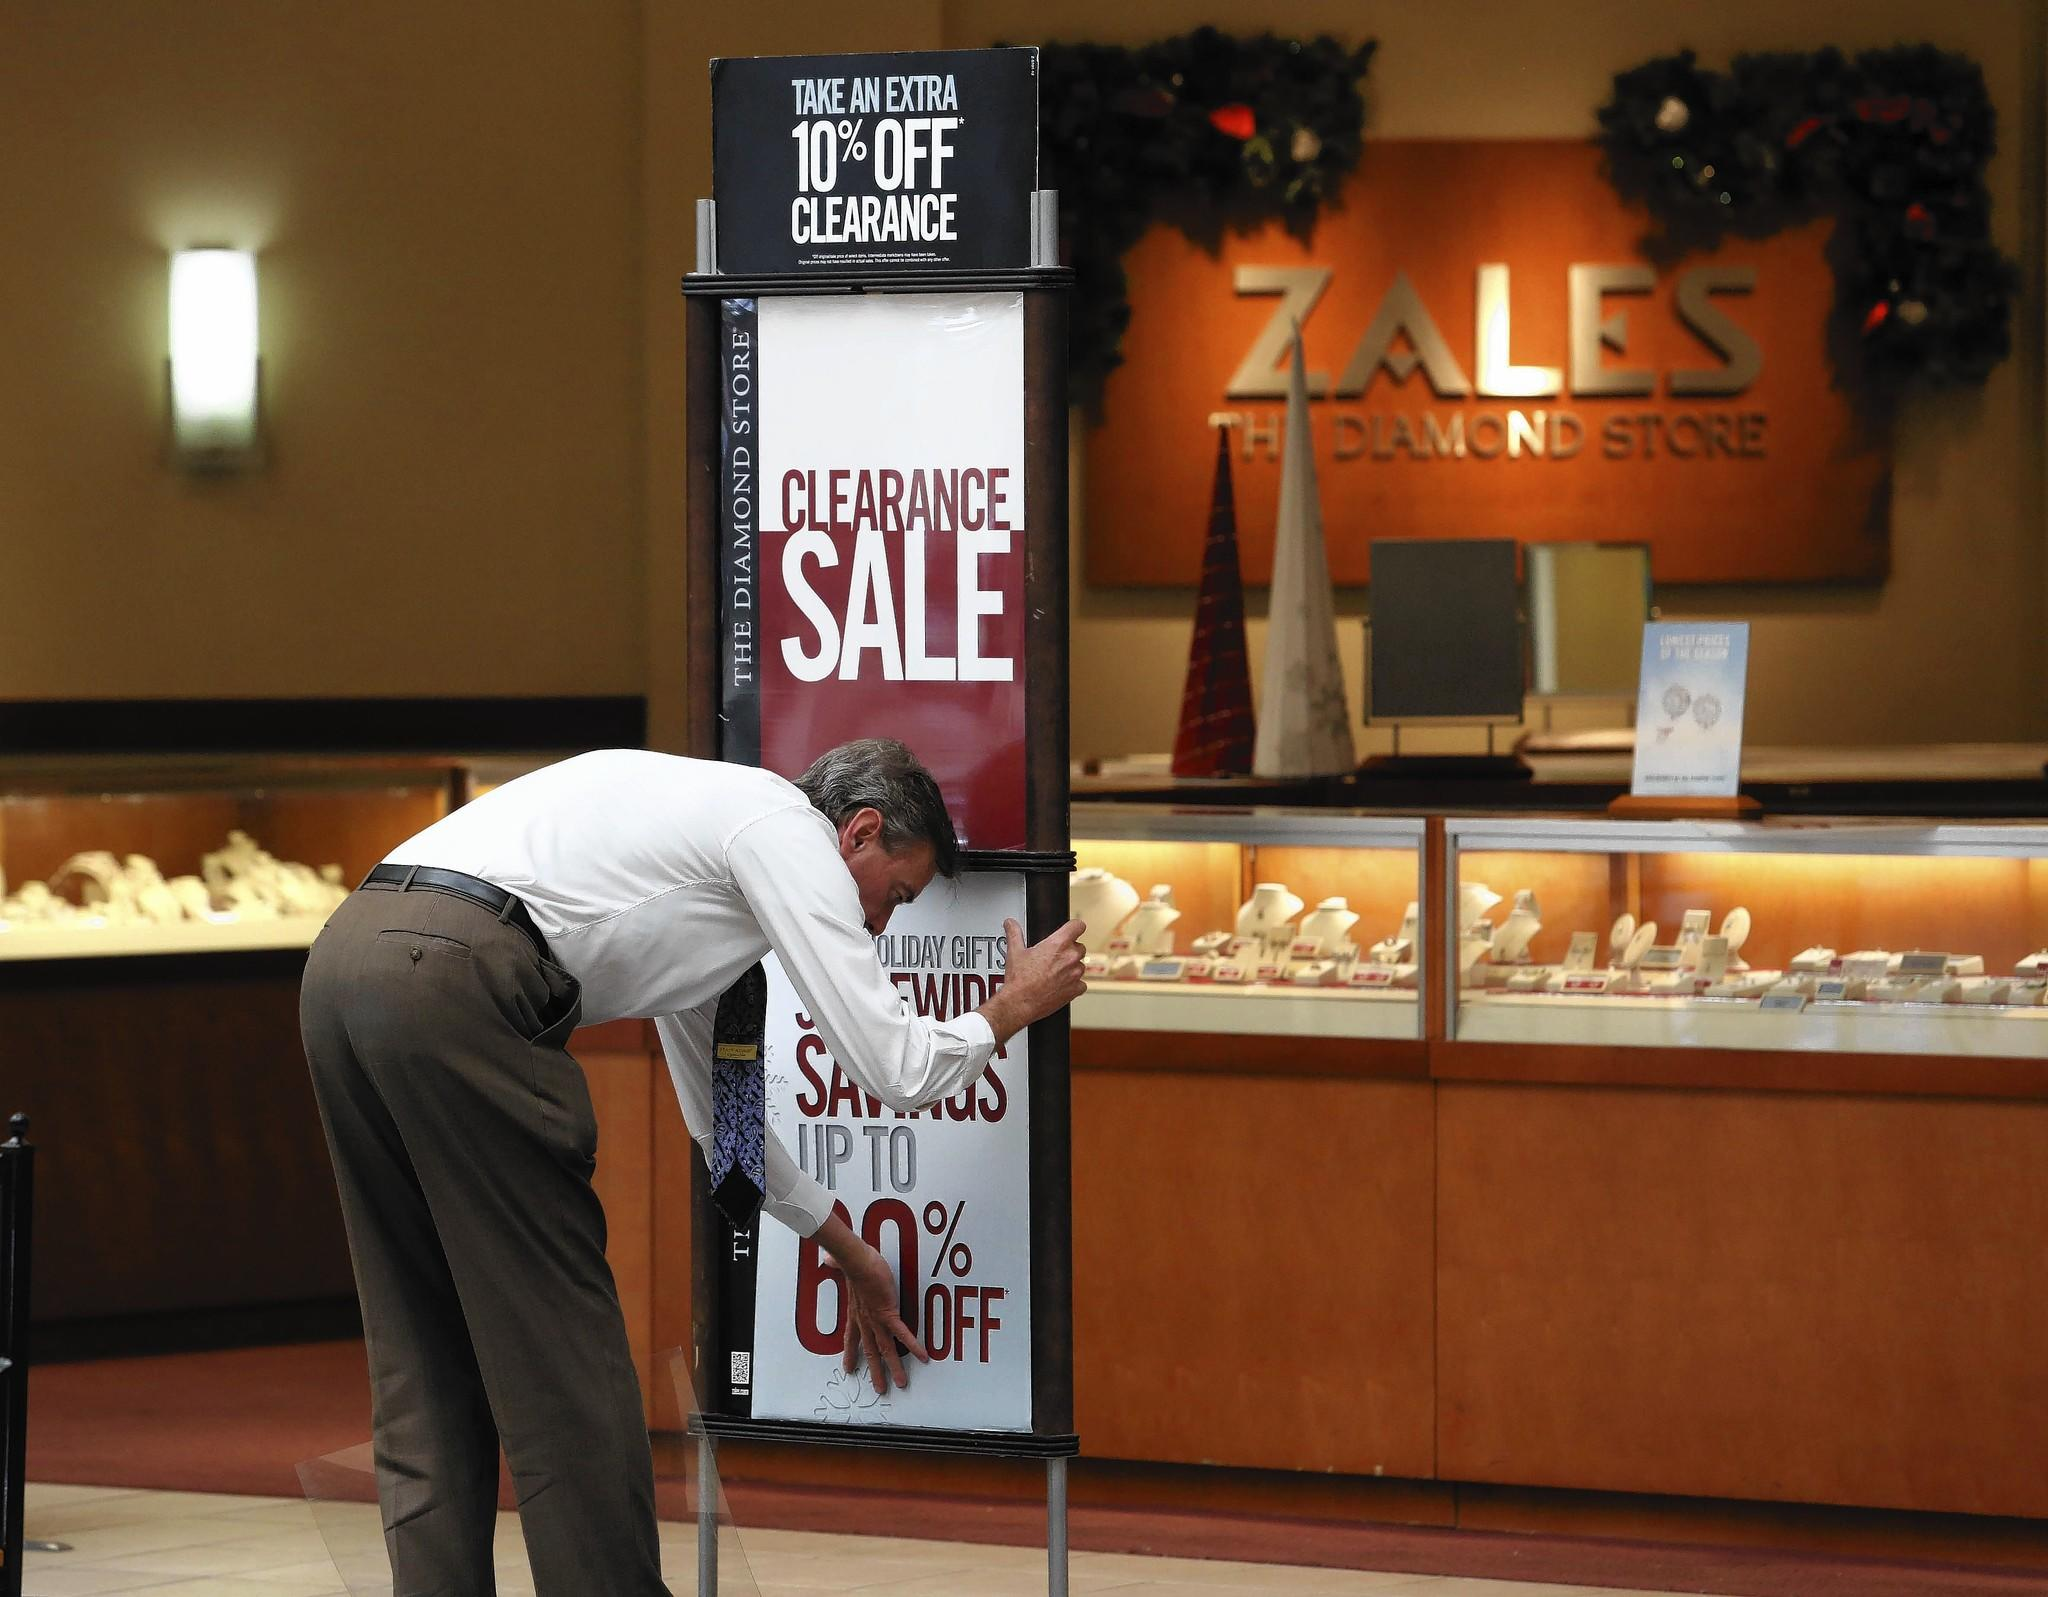 Shoppers at Fashion Square mall on East Colonial Drive the day after Christmas. A worker at Zales puts up the mark down signs.